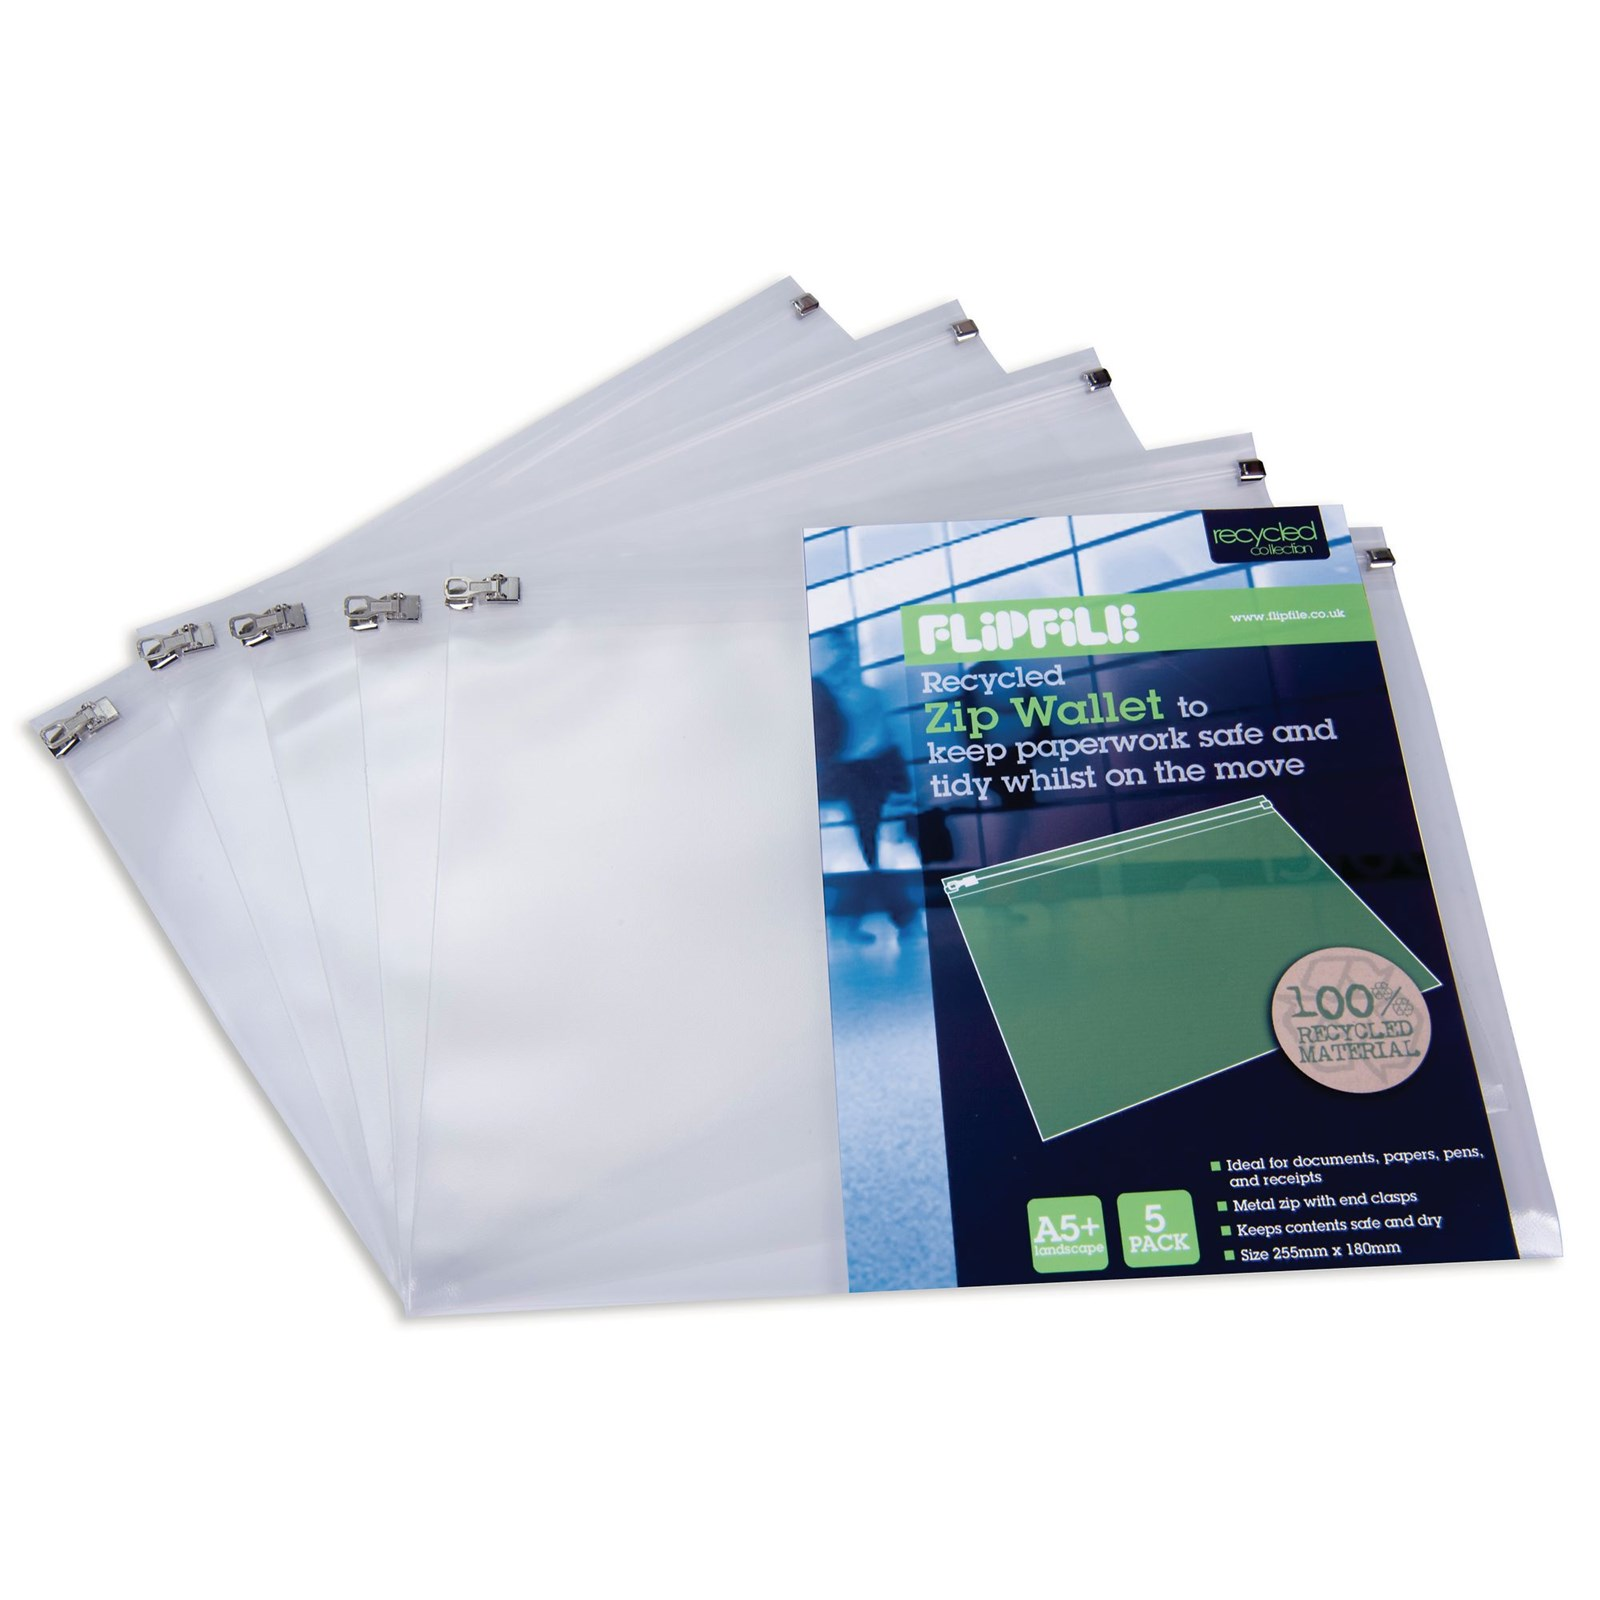 Flipfile Recycled Zip Wallet A4+ Clear - Pack of 5